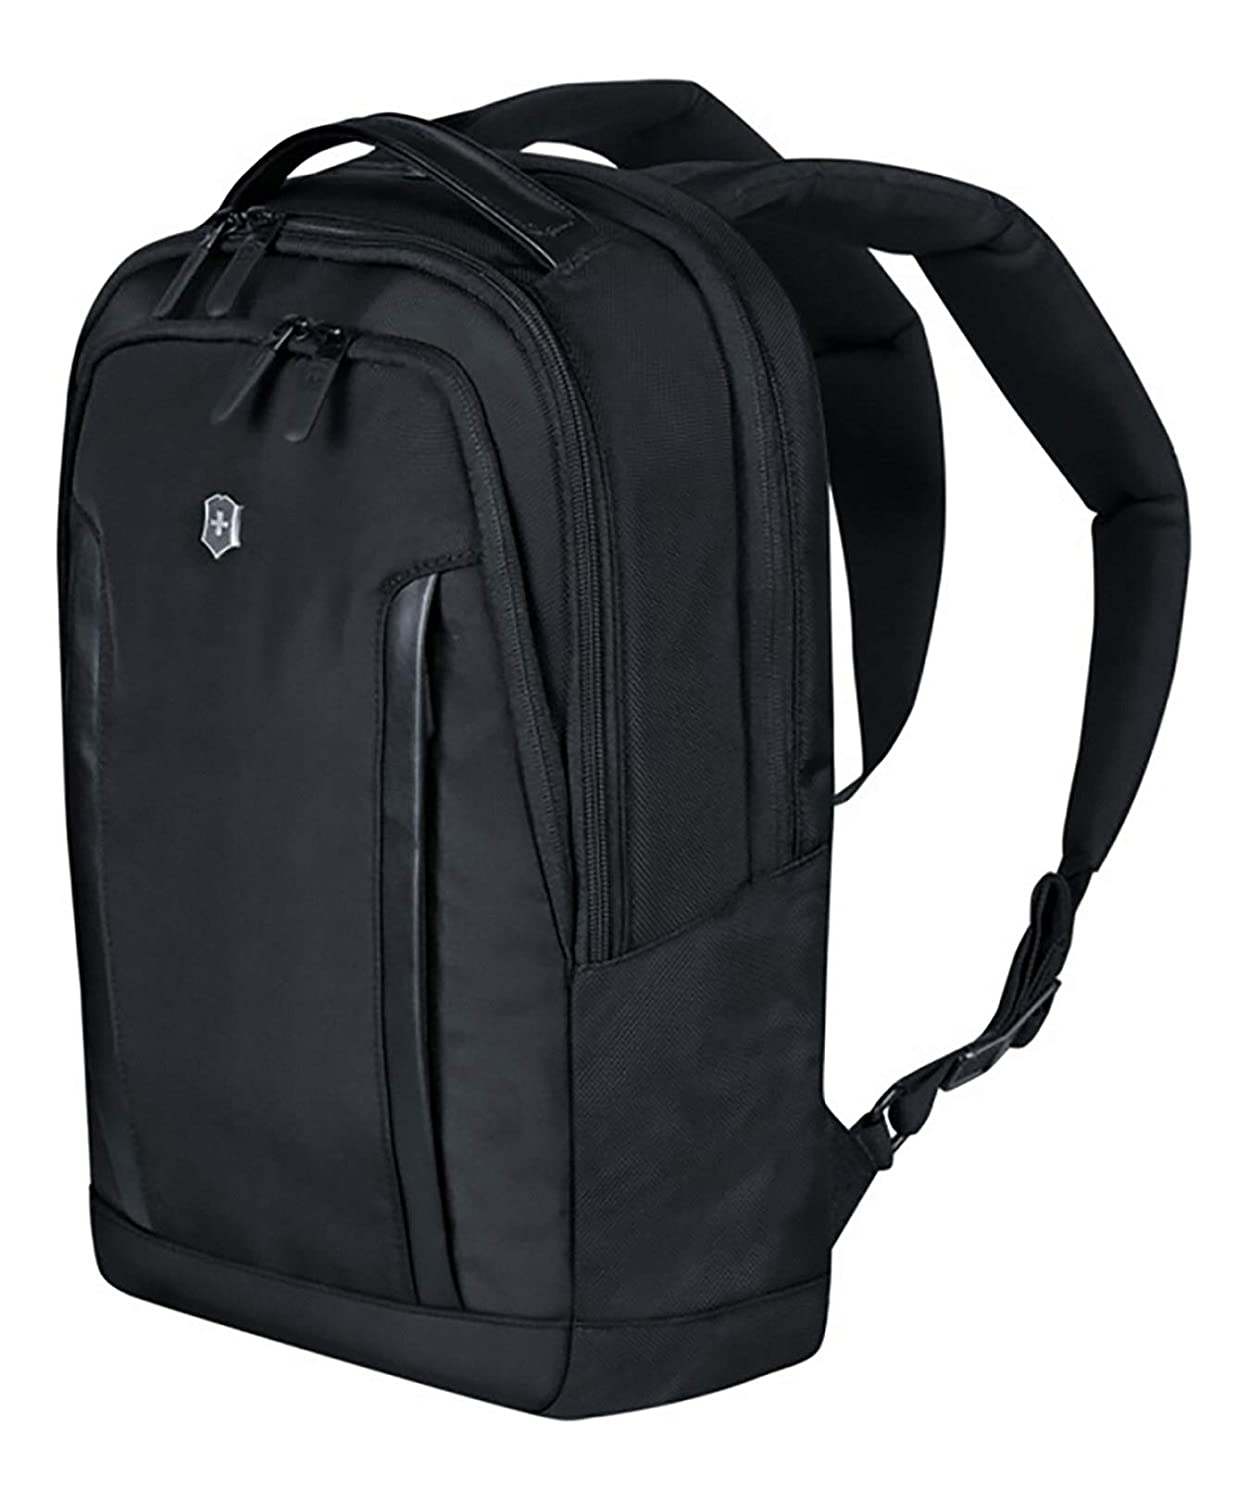 Victorinox Altmont Professional Compact Laptop Backpack, Black, One Size Victorinox Travel Gear 602151